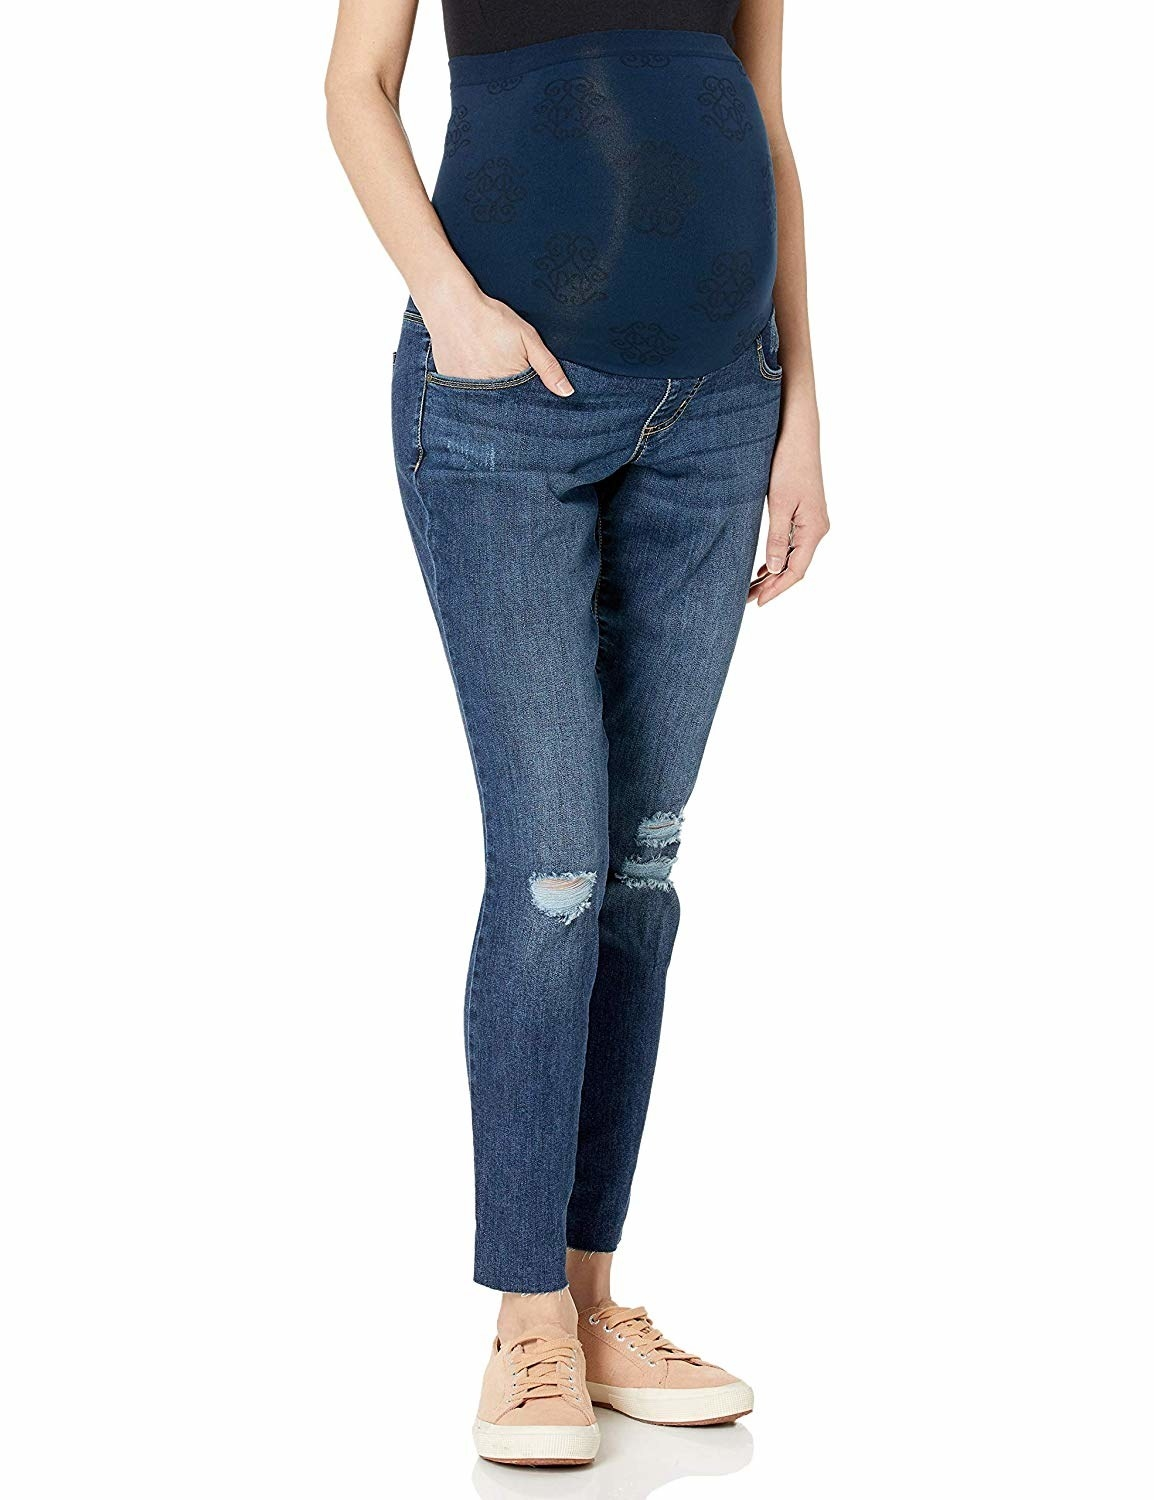 93cabcfc678b0 A few pairs of maternity jeans and shorts perfect for feeling as much like  style-savvy self as possible even months and months into your pregnancy.